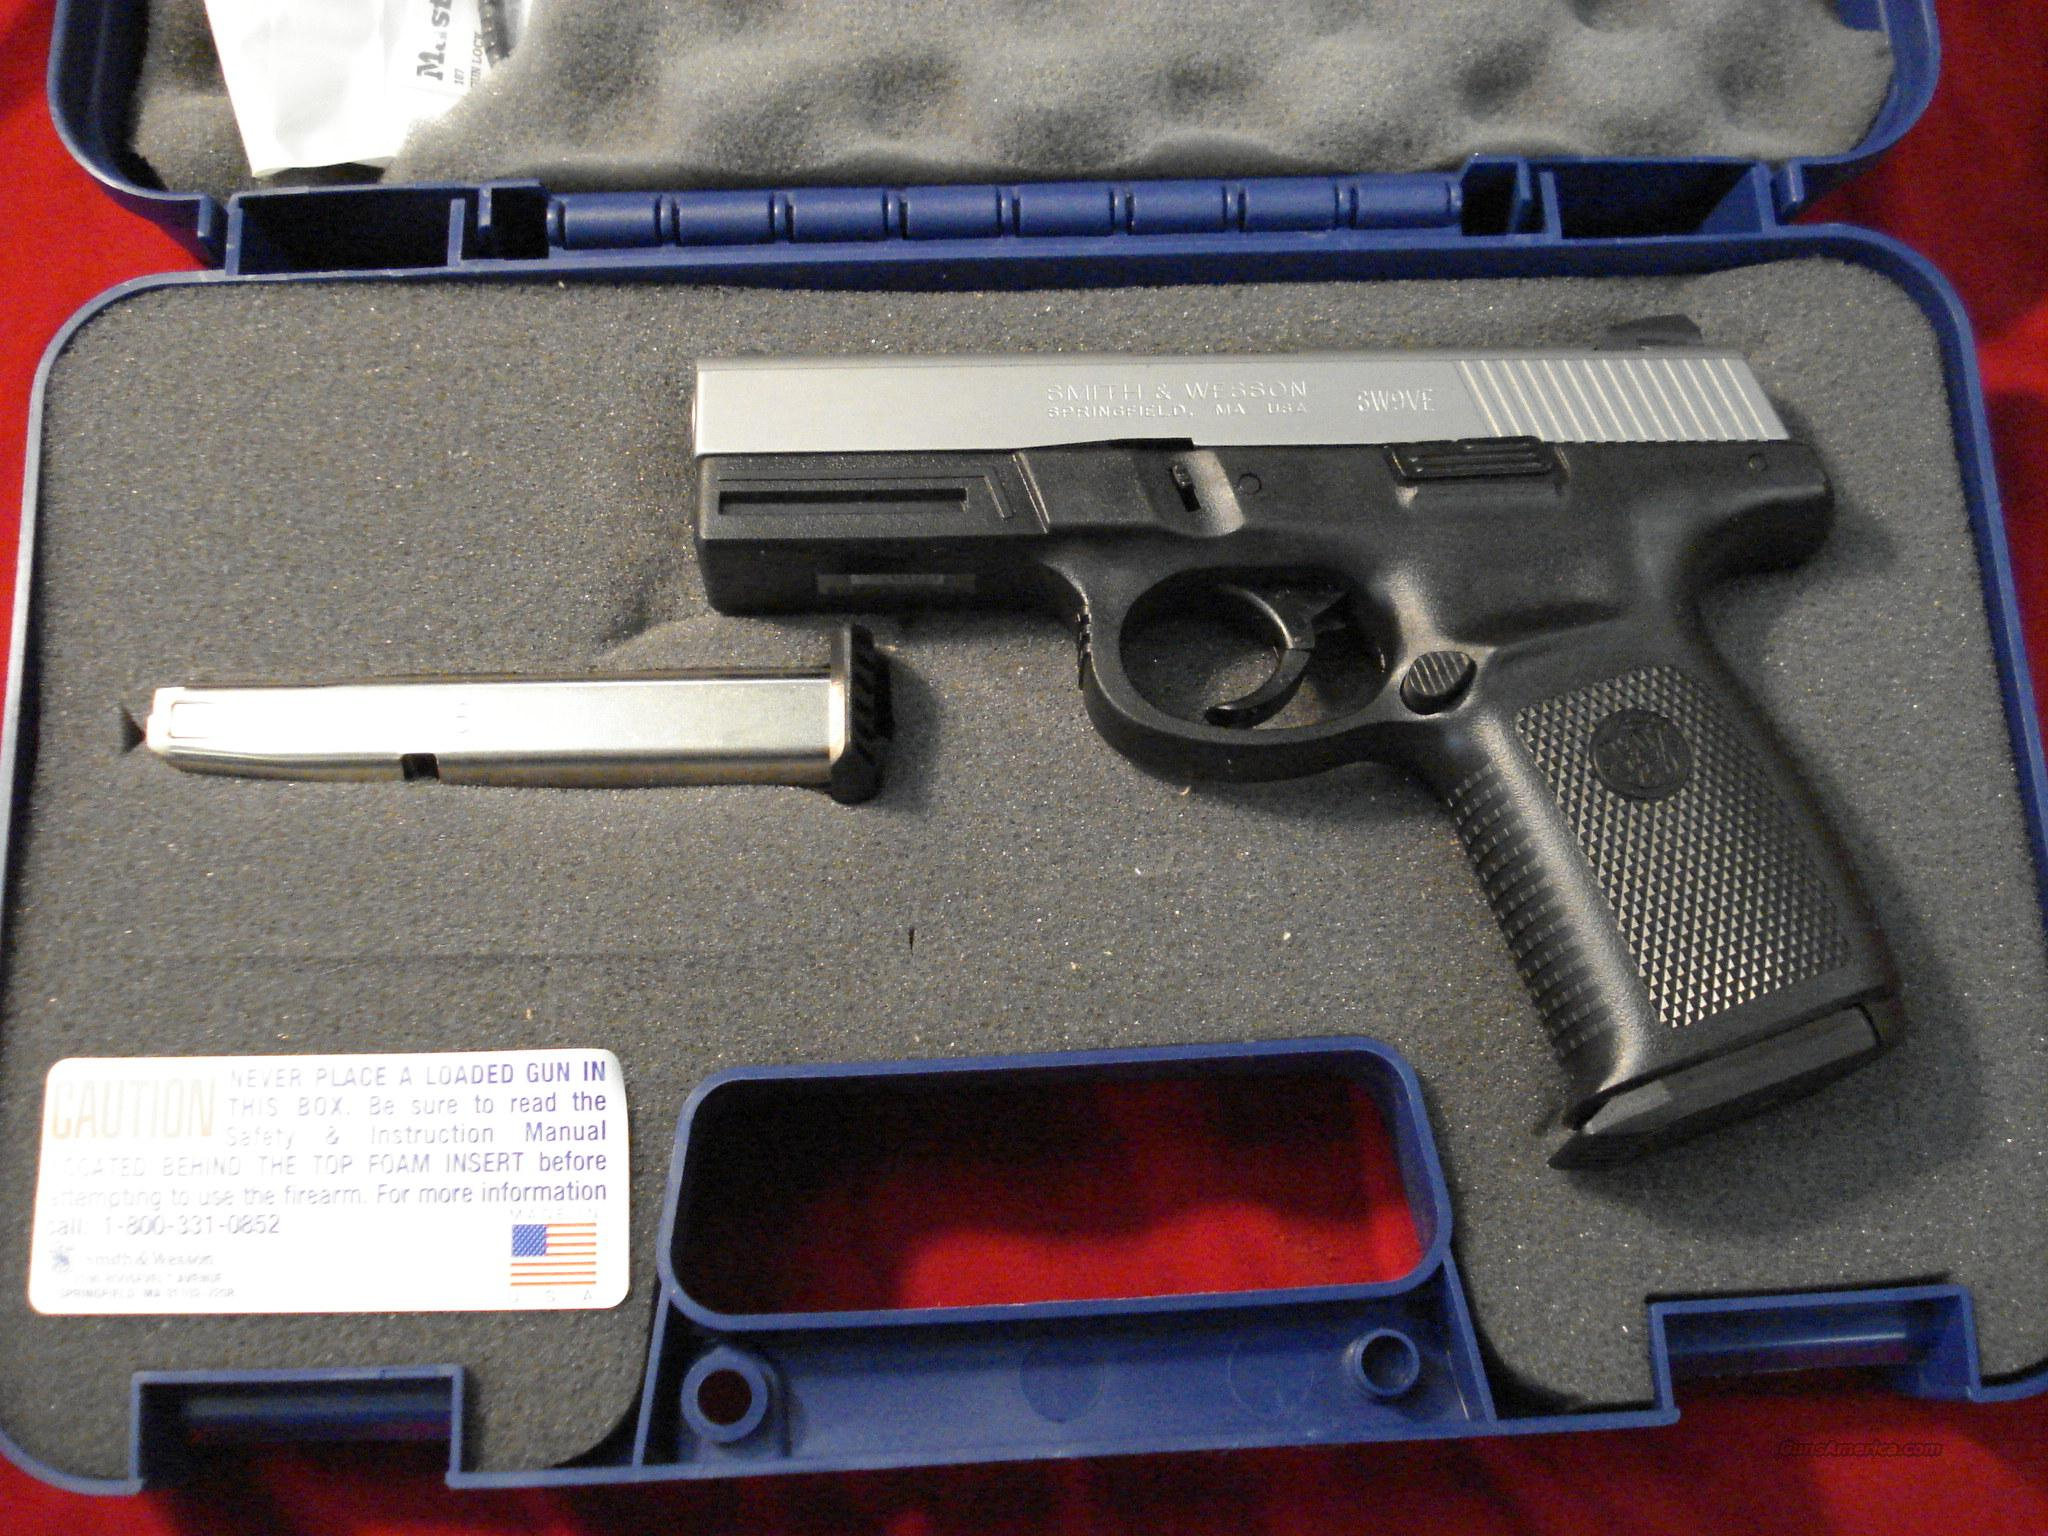 SMITH AND WESSON SIGMA STAINLESS 9MM HIGH CAP NEW  {{ FACTORY REBATE OFFER ENDS 4-30-10 }}  Guns > Pistols > Smith & Wesson Pistols - Autos > Polymer Frame